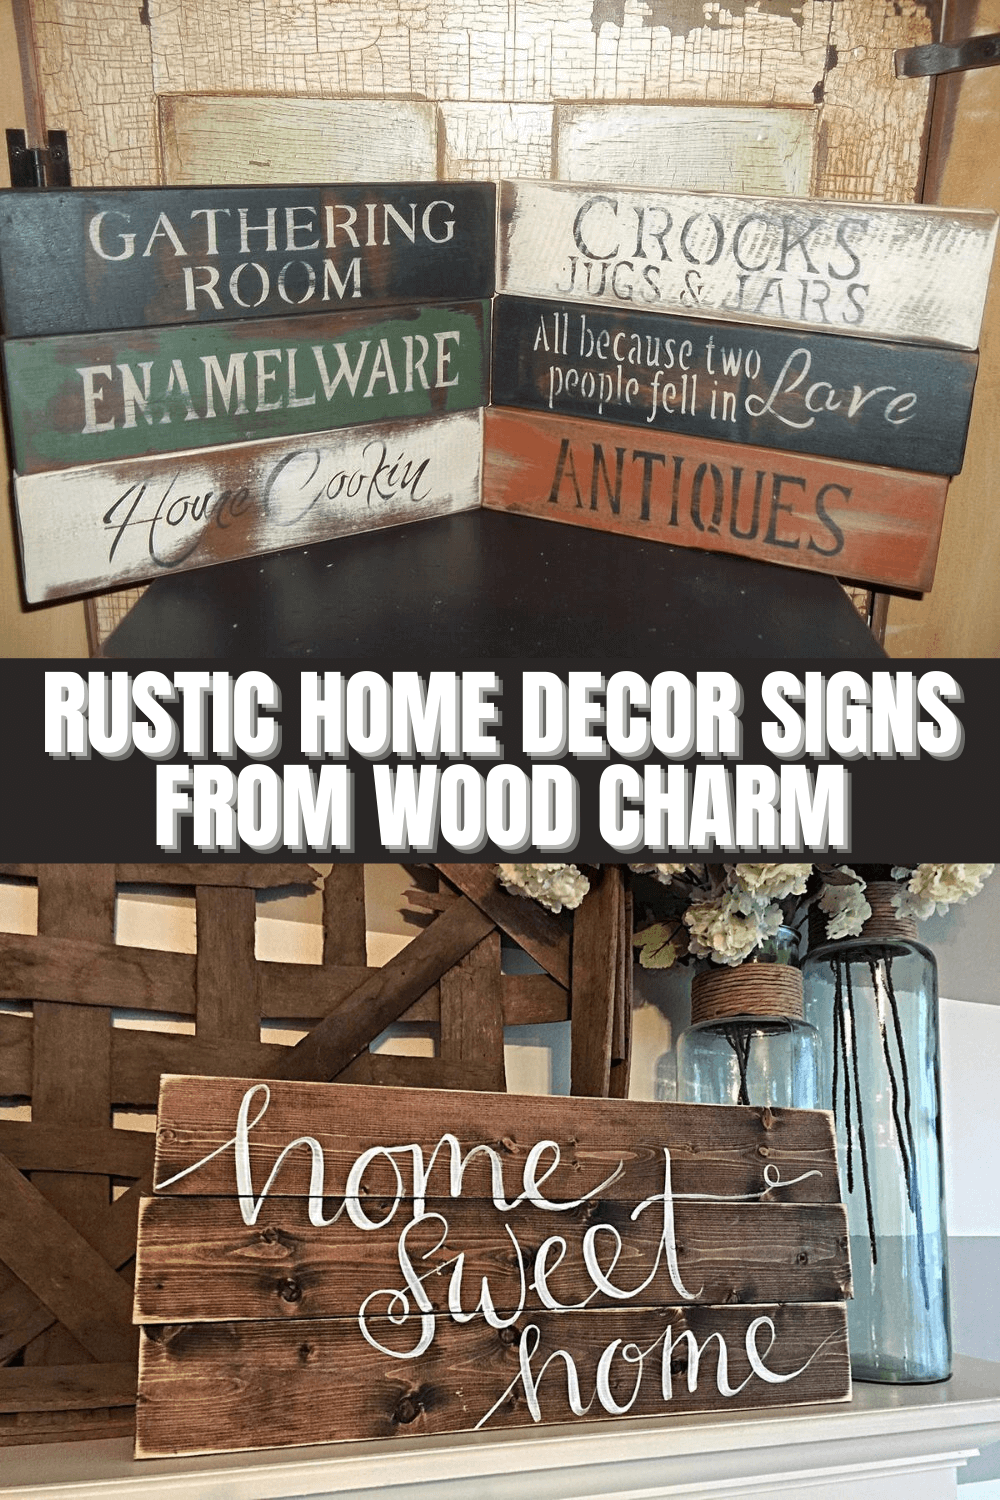 RUSTIC HOME DECOR SIGNS FROM WOOD CHARM